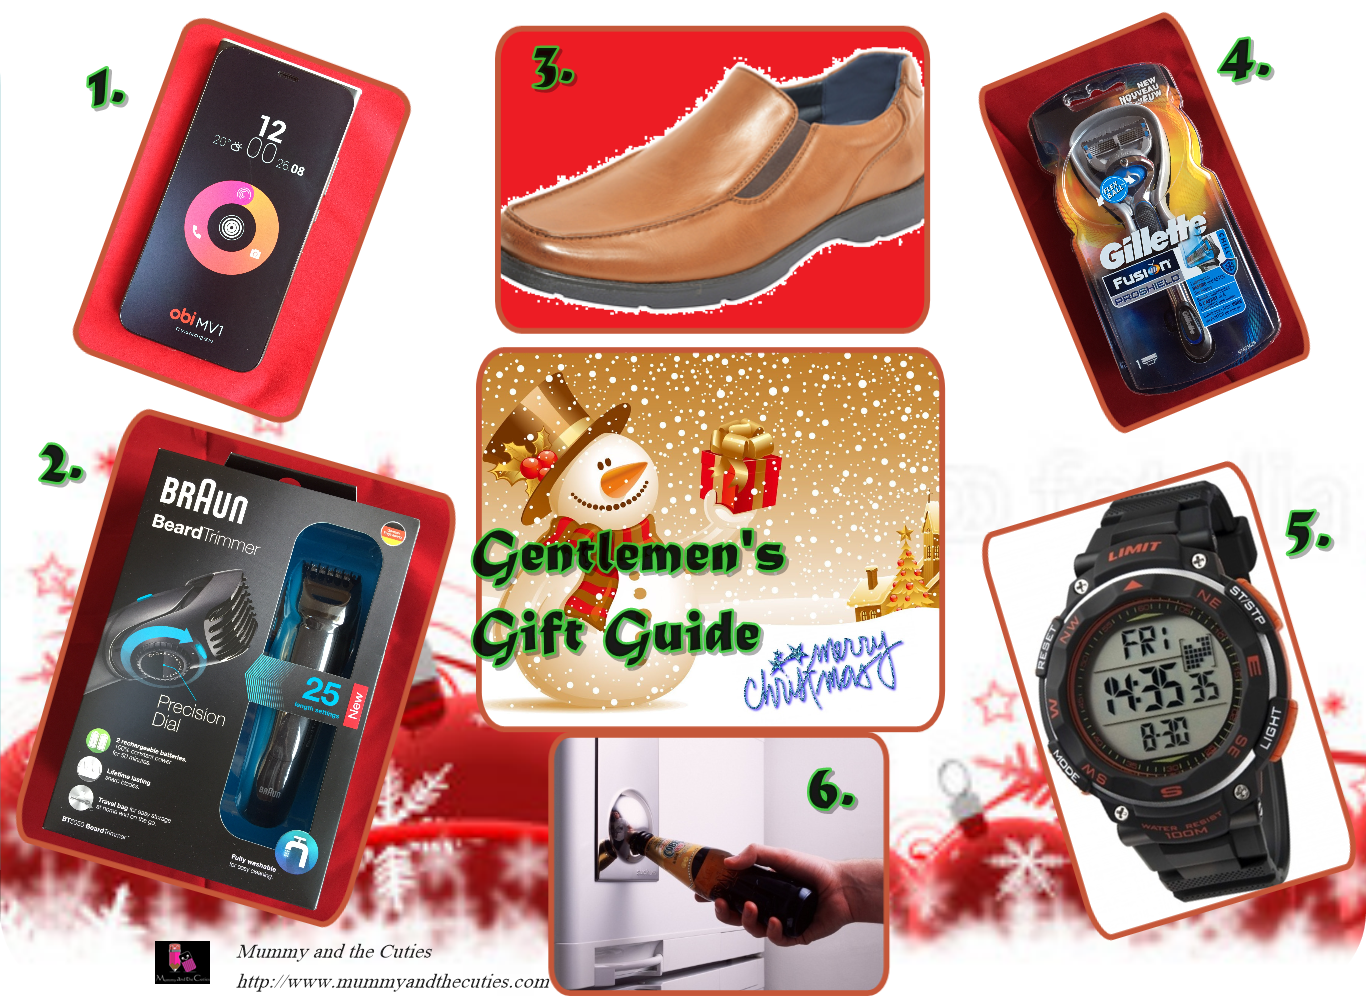 Gentlemen's Christmas Gift Guide